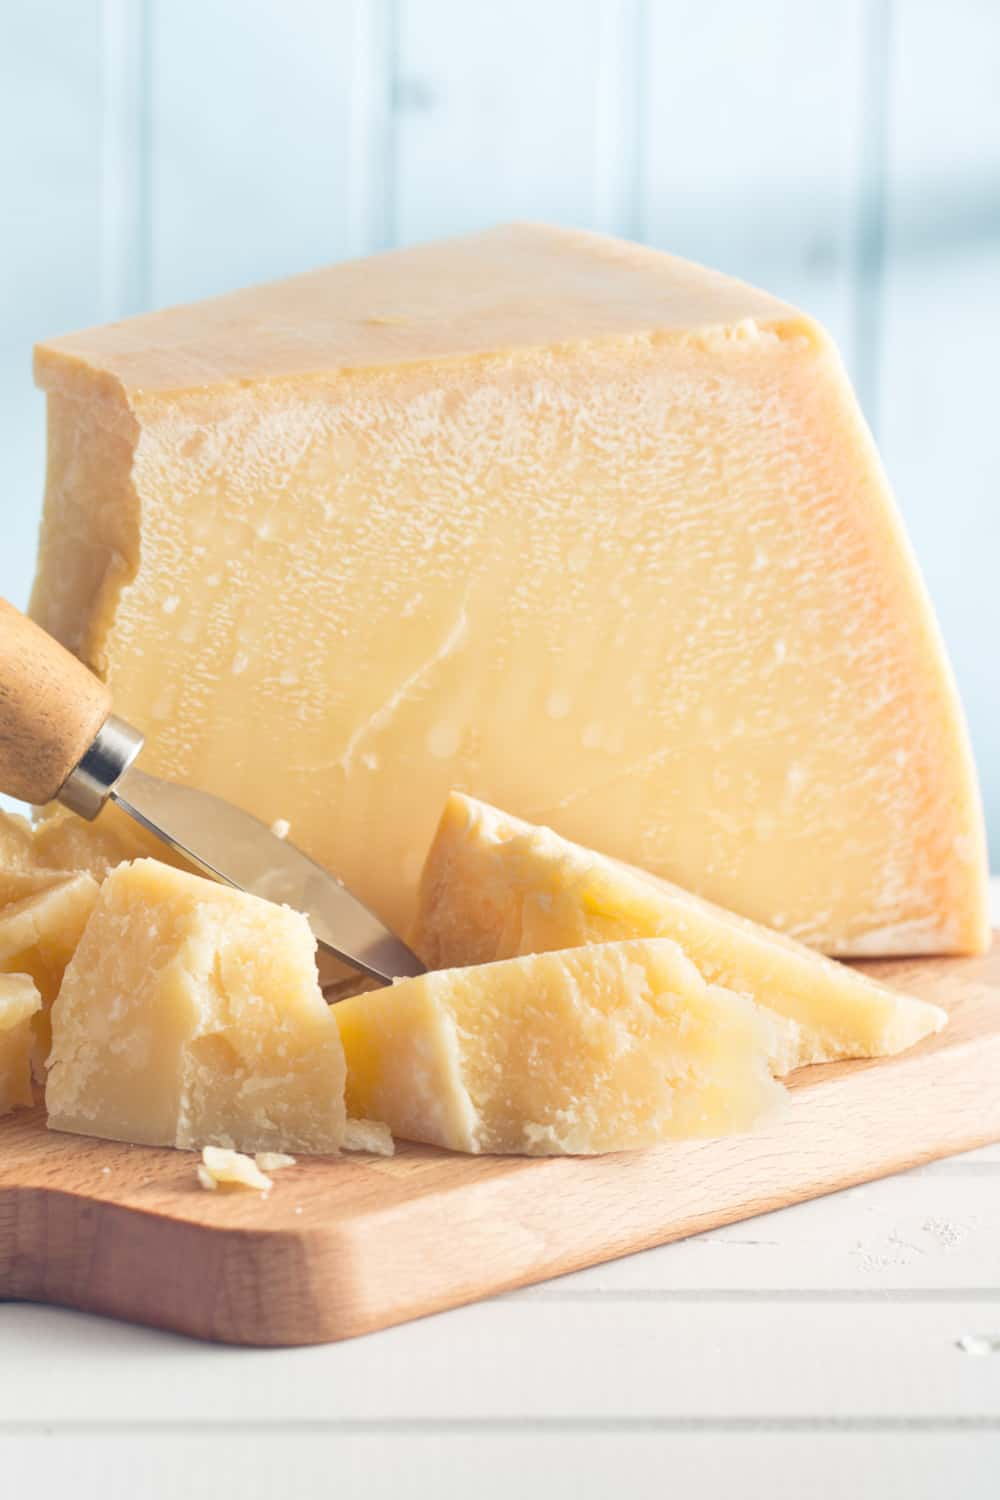 How Long Does Parmesan Cheese Last